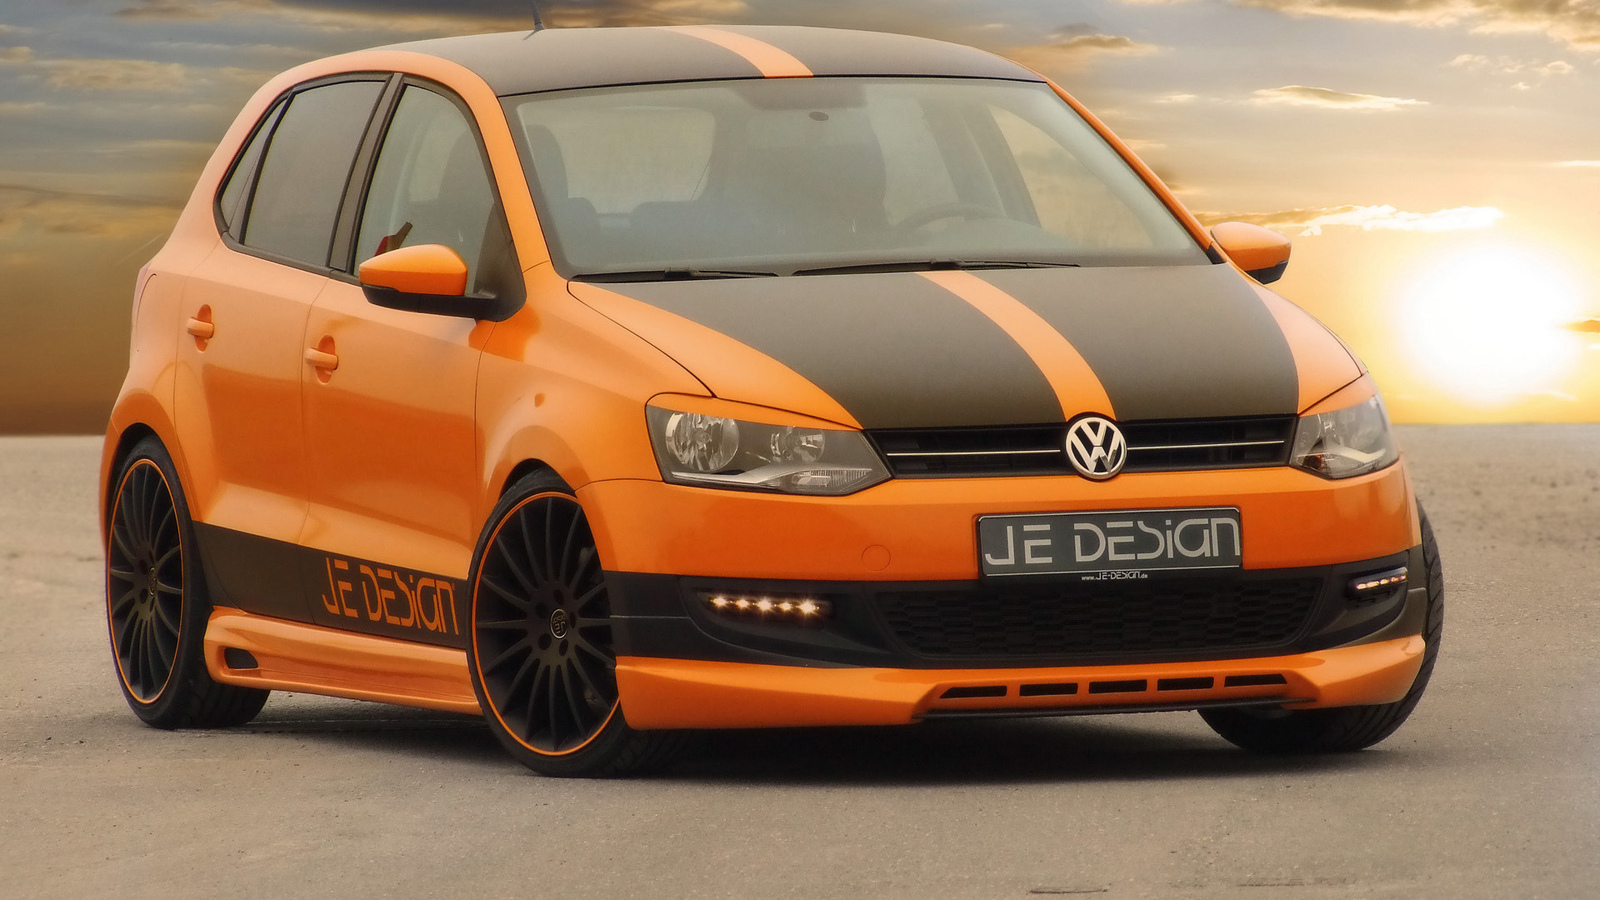 design, volkswagen, je, polo